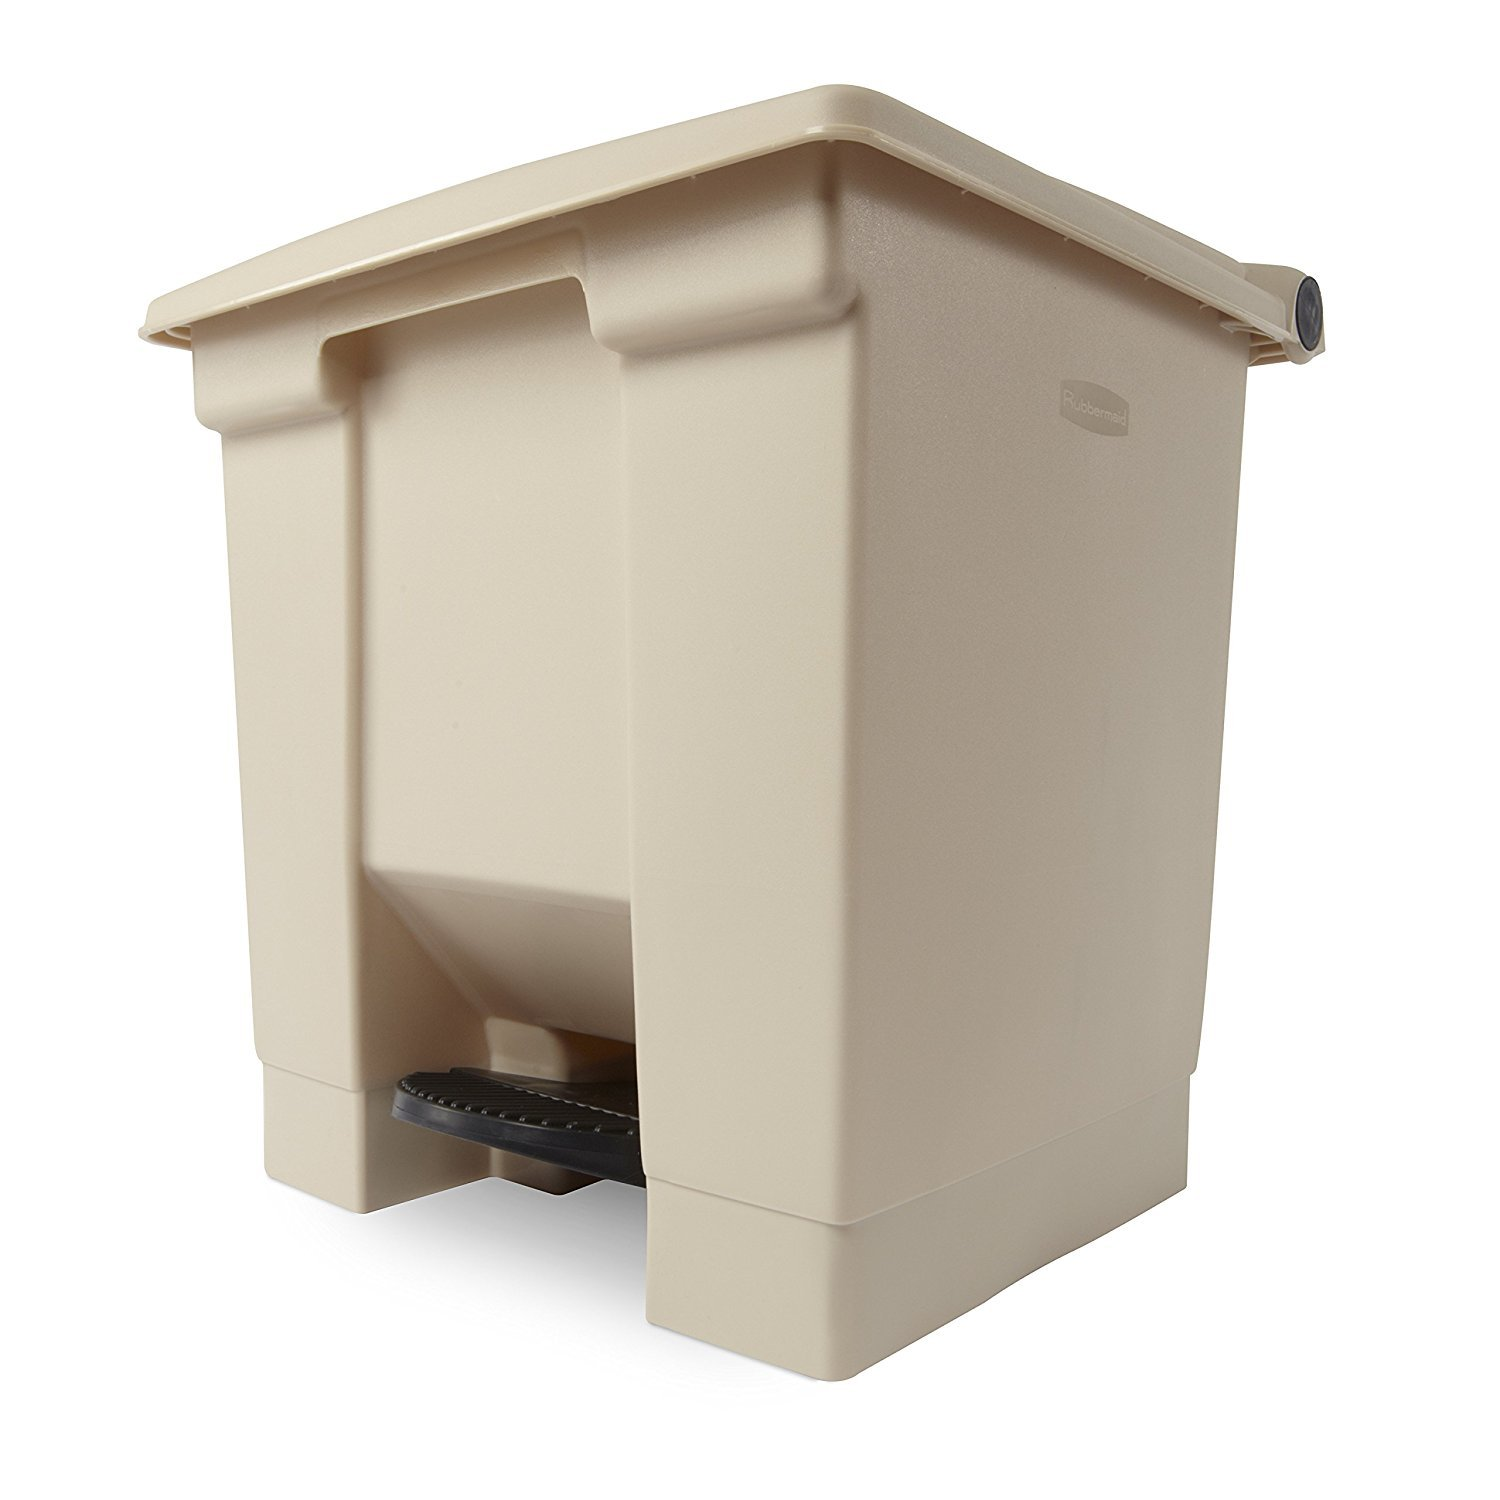 RCP614300BG - Rubbermaid Step-on Waste Container